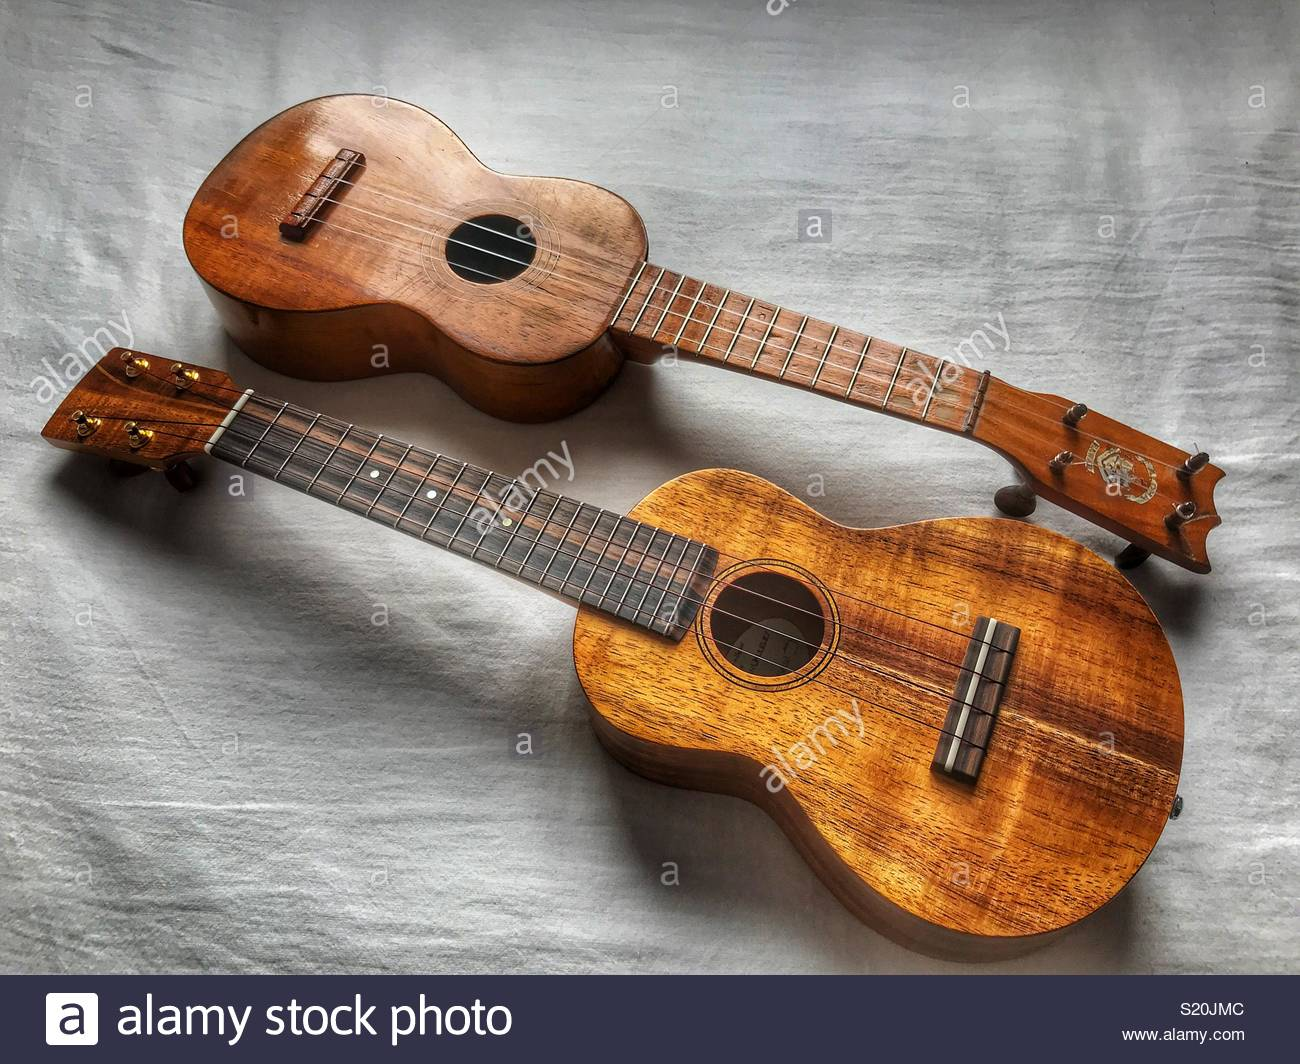 Beyond Beginners Ukulele-Something Old Something New!